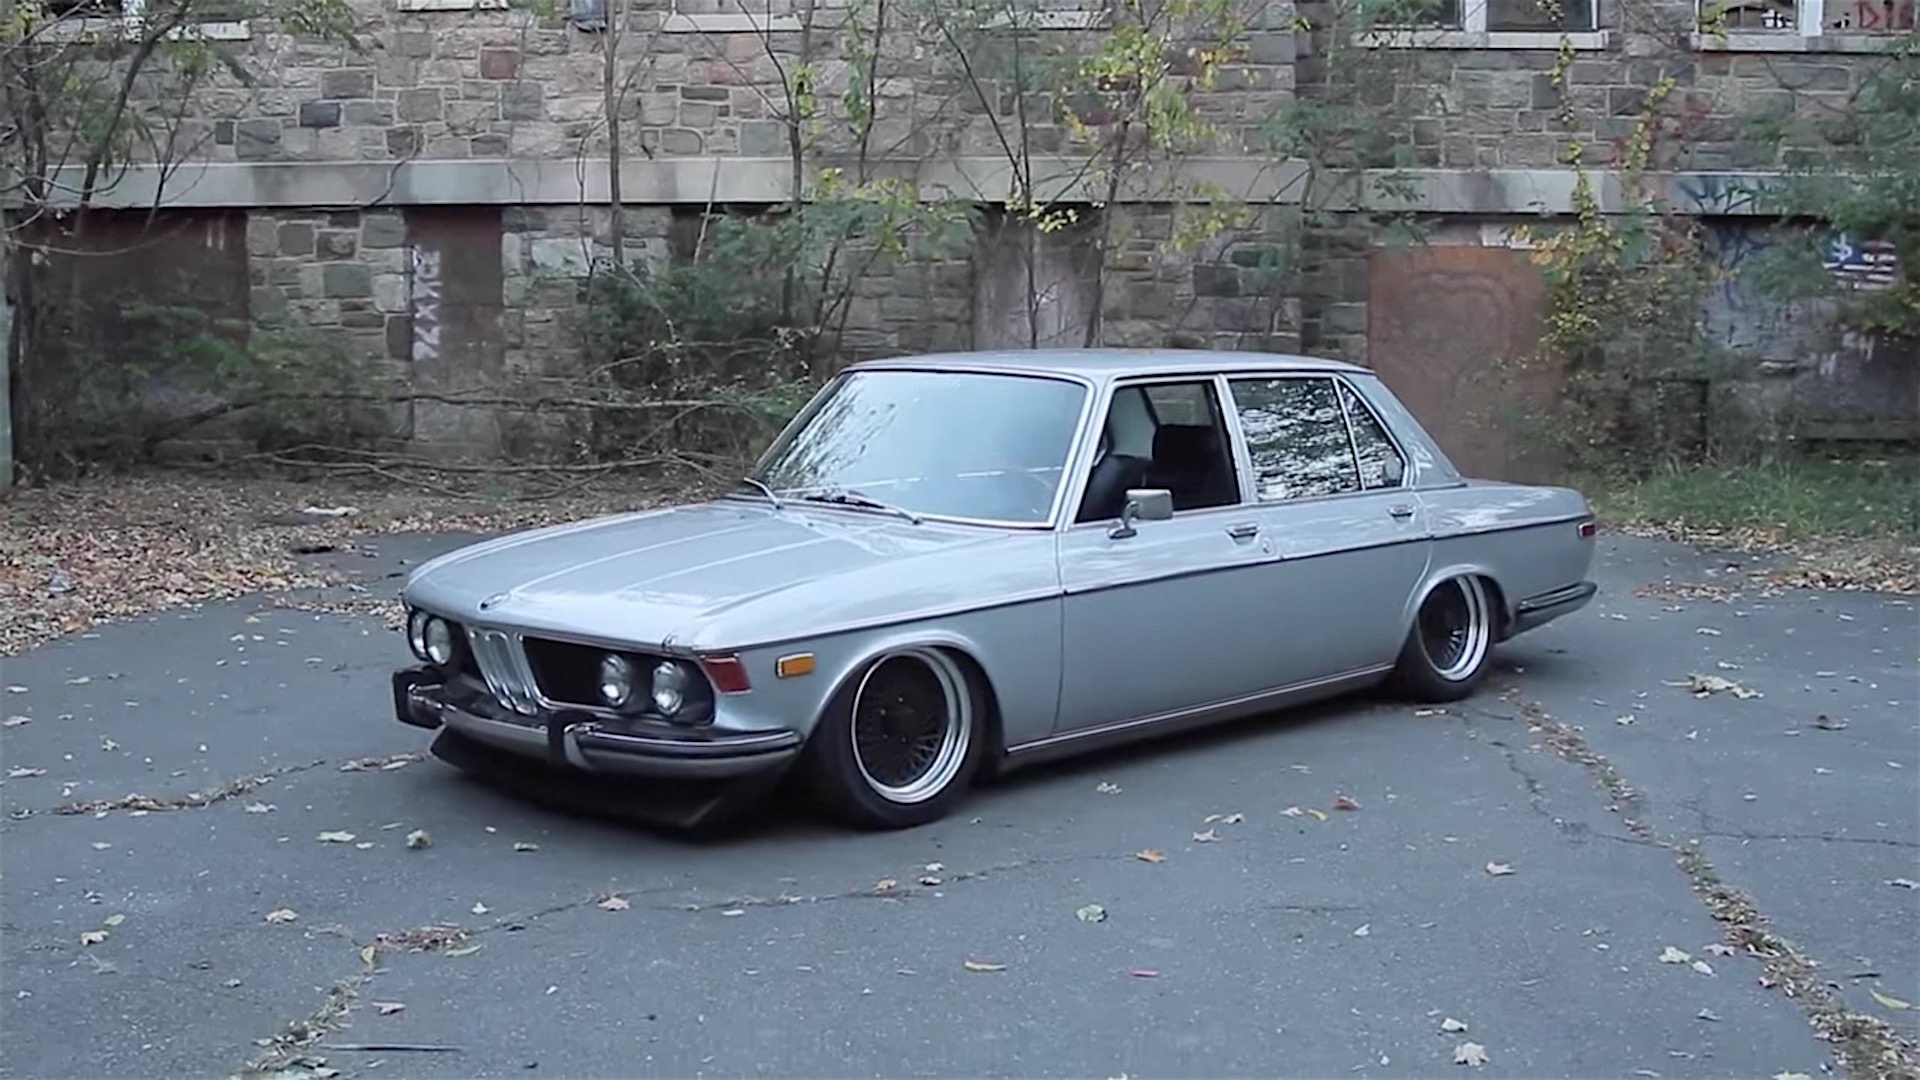 A Rare Bmw Bavaria Stanced